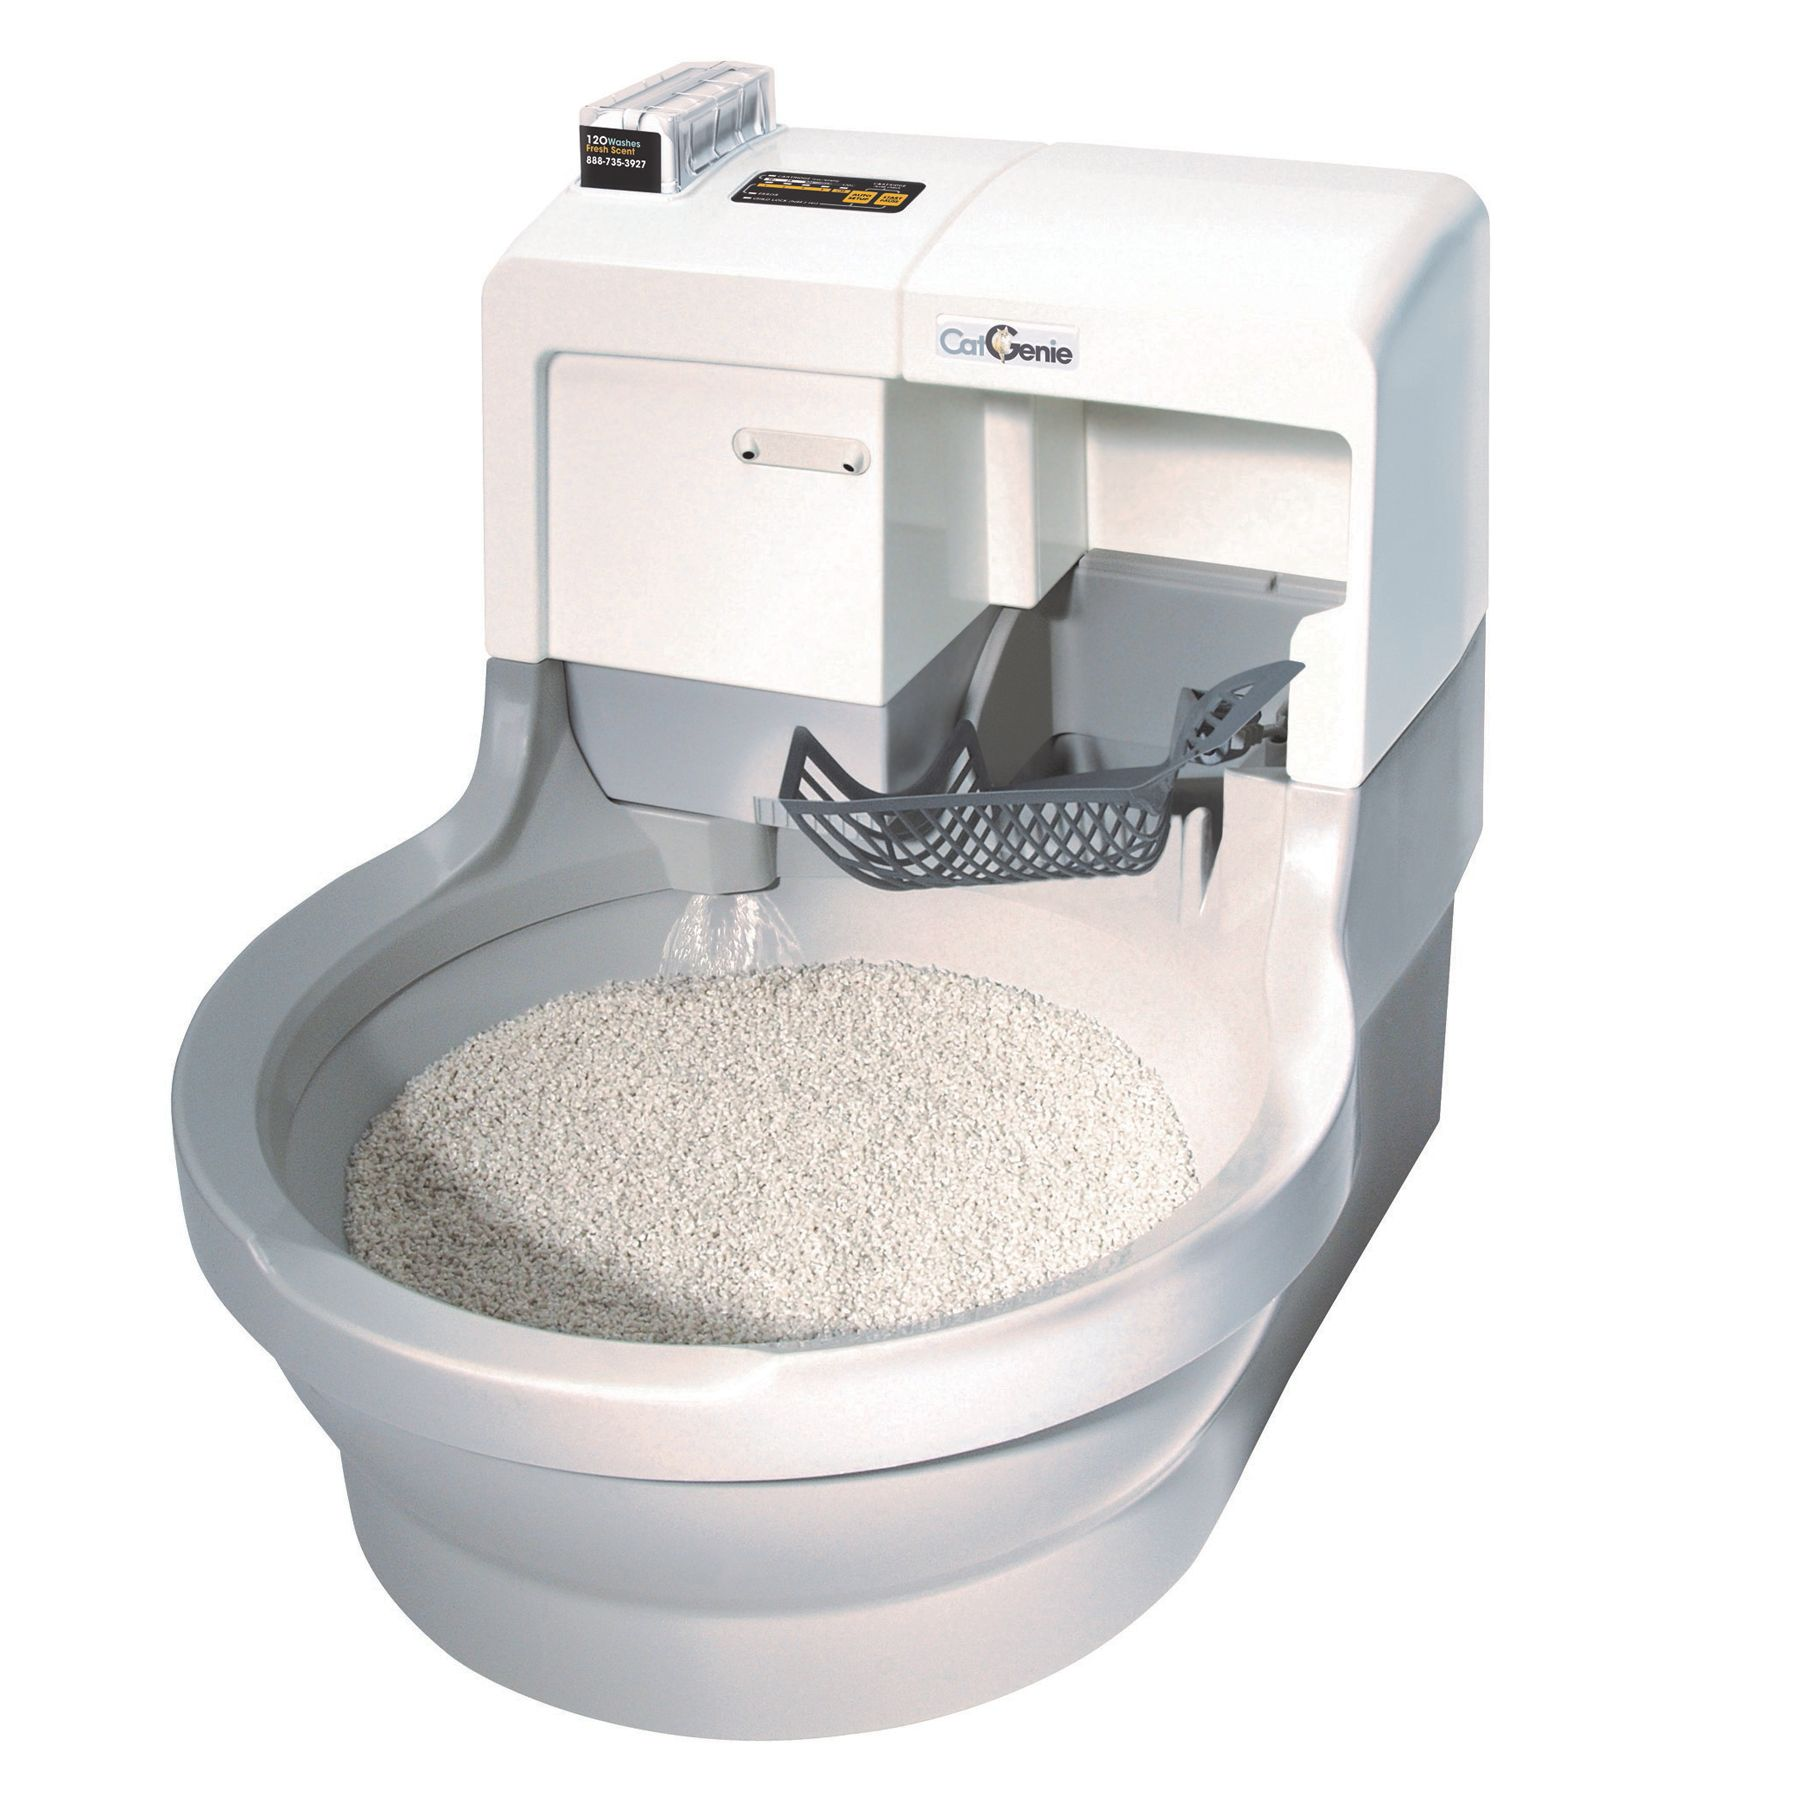 CatGenie Self Washing Cat Litter Box